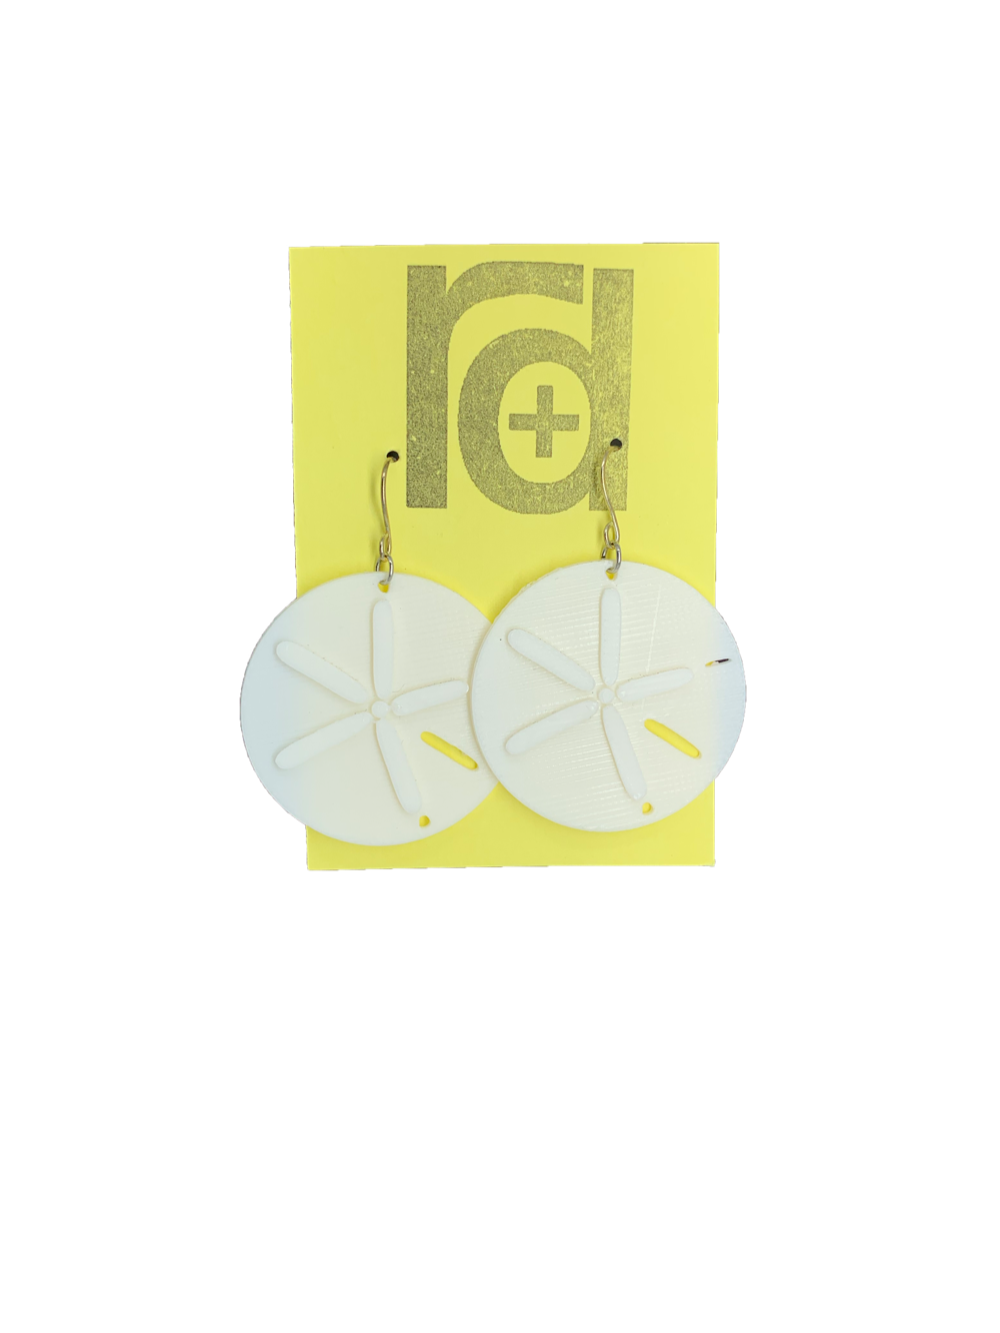 Two white earrings on a yellow earring card. The earrings look like sand dollars with a star burst patten that is raised from he surface.